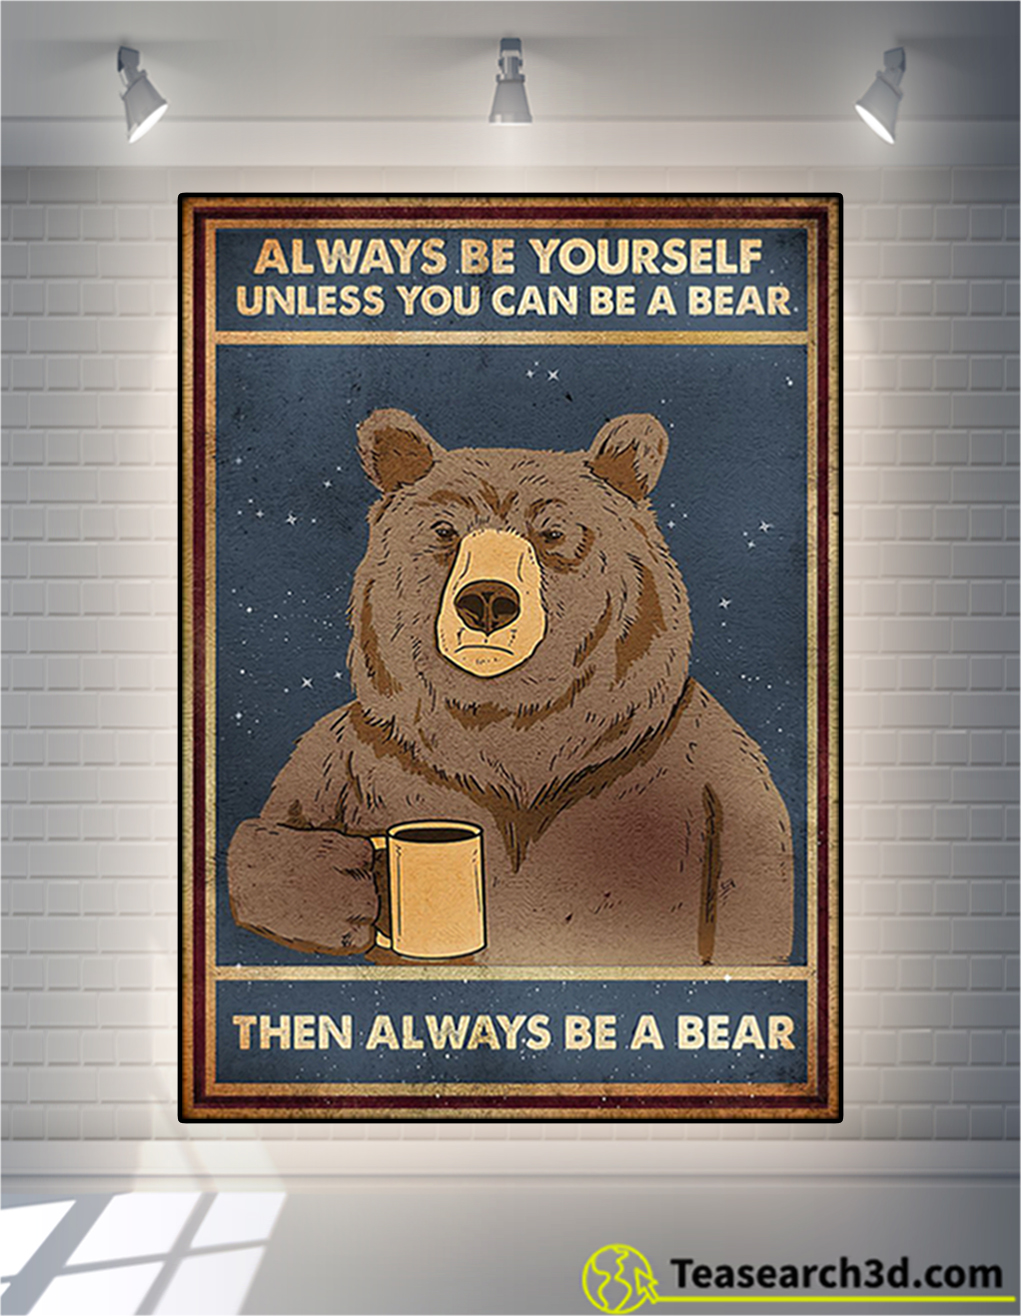 Always be yourself unless you can be a bear poster